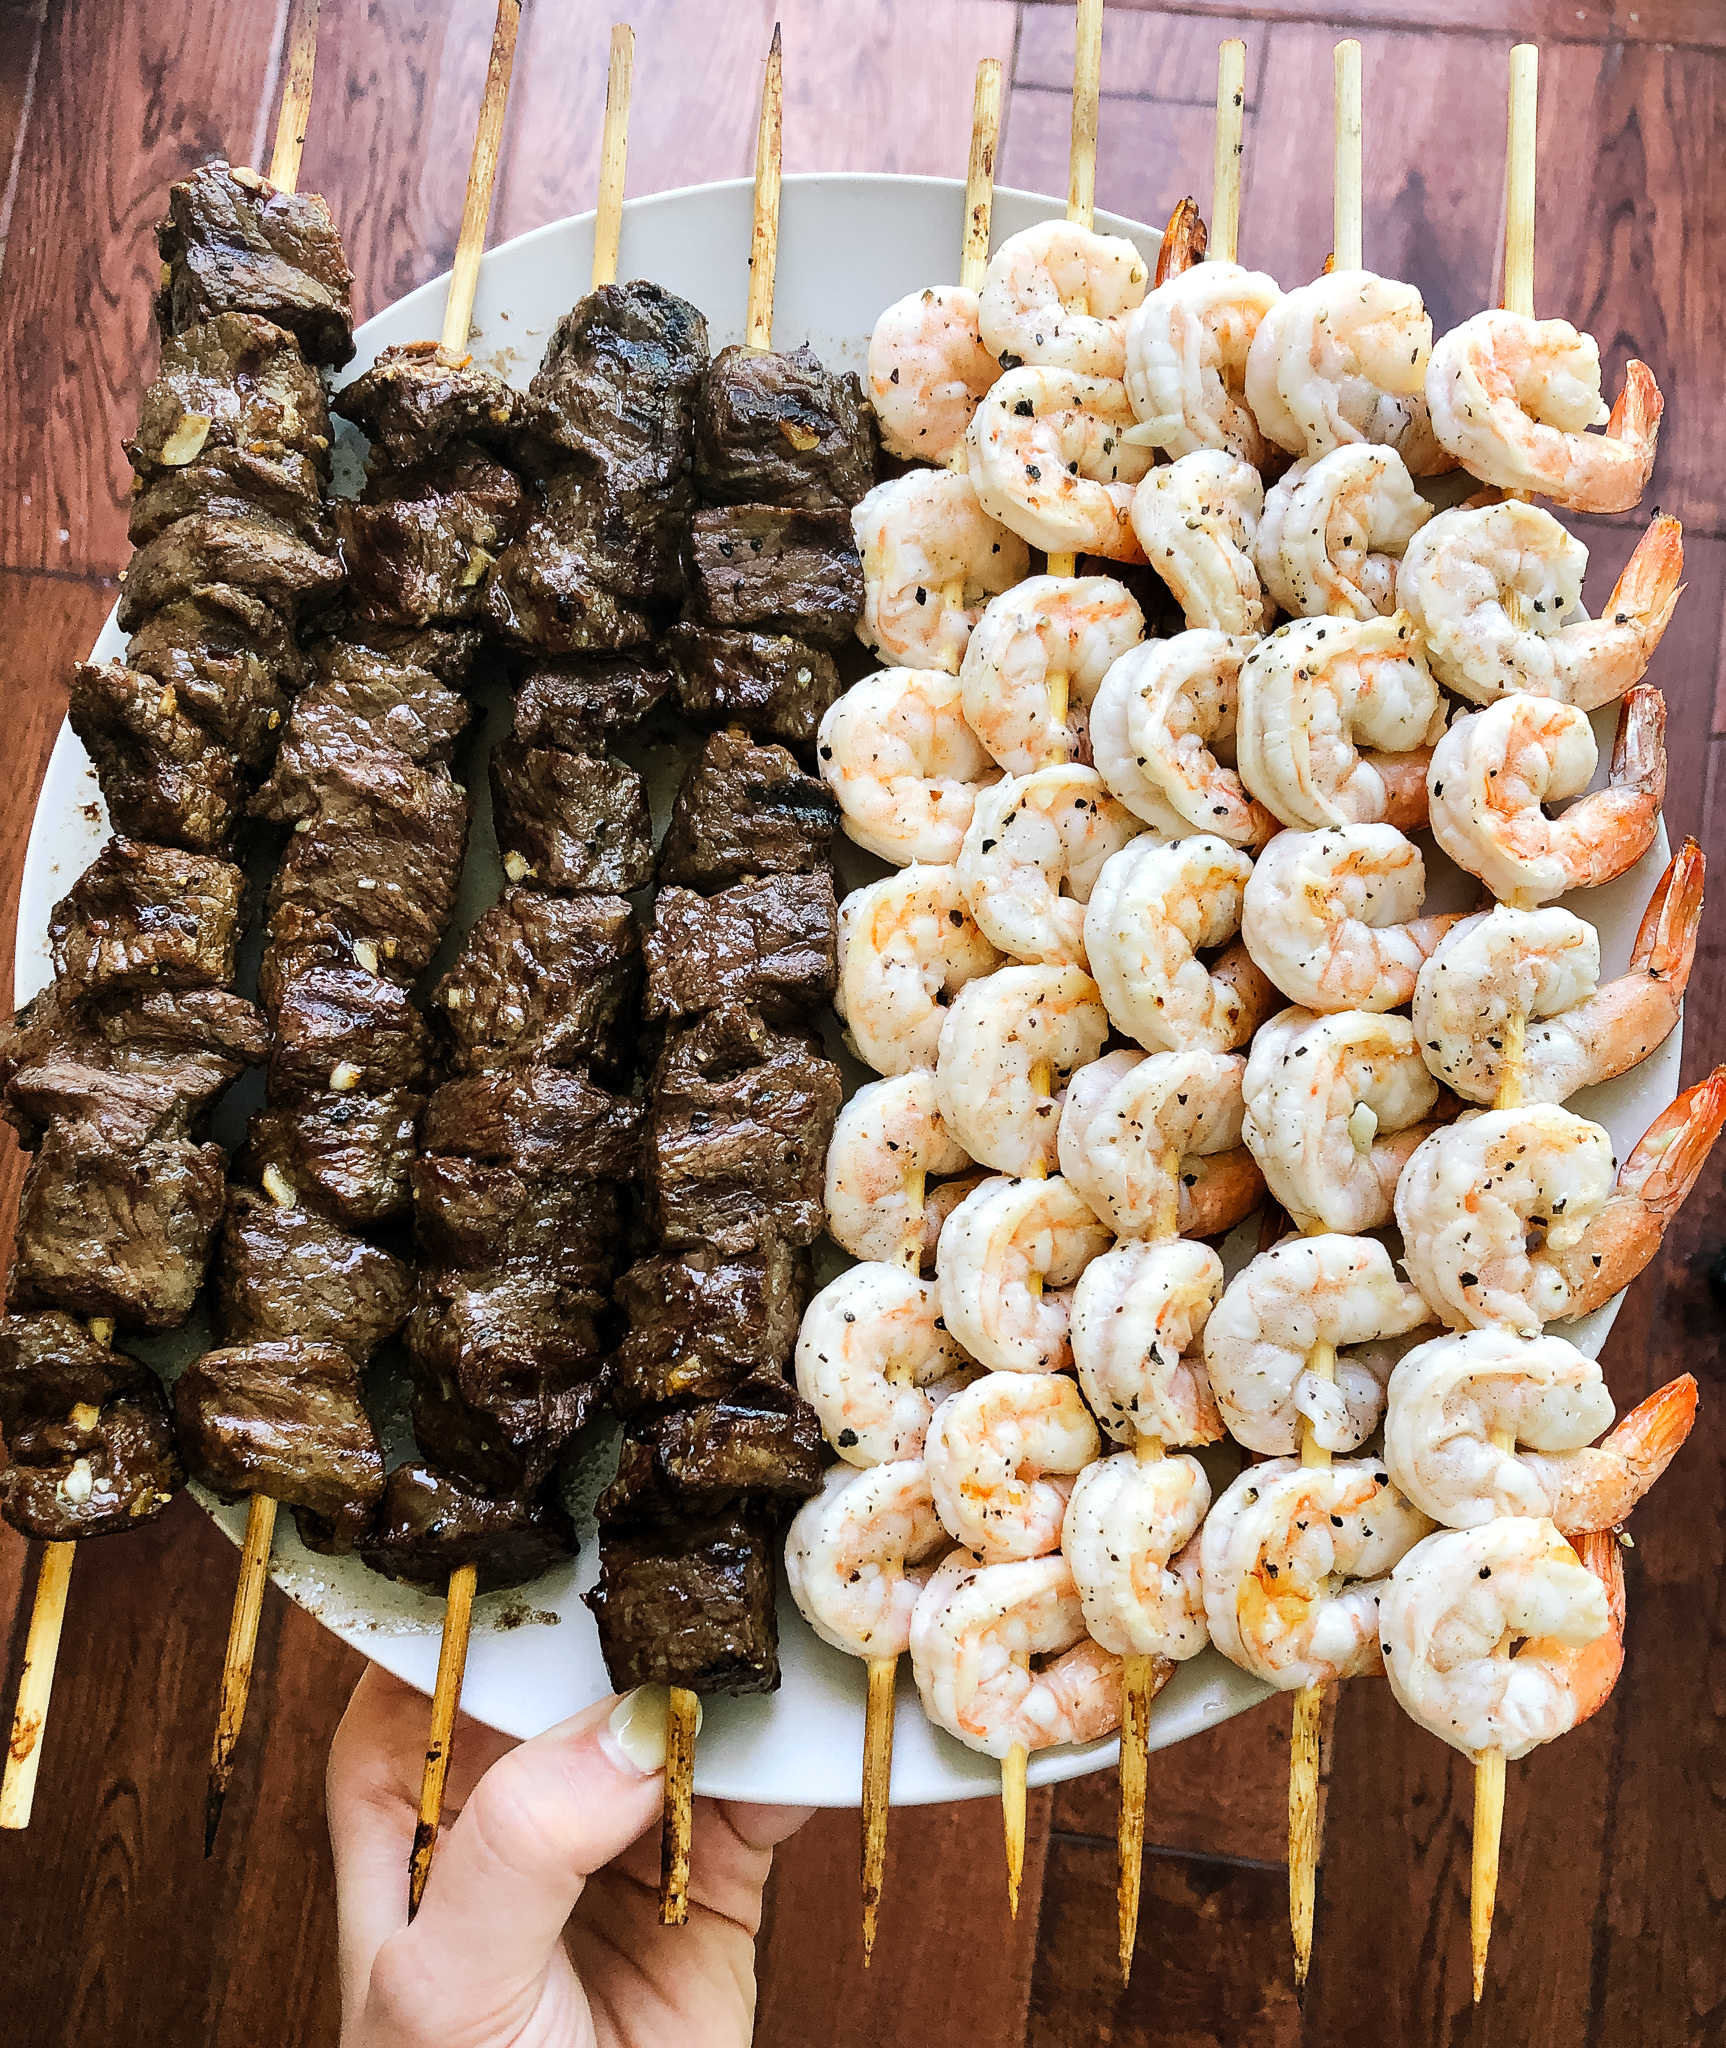 These grilled surf and turf skewers will surely take your summer family barbecues up a notch. They are whole30 friendly, low carb and so easy to throw together and get on the grill in less than 20 minutes